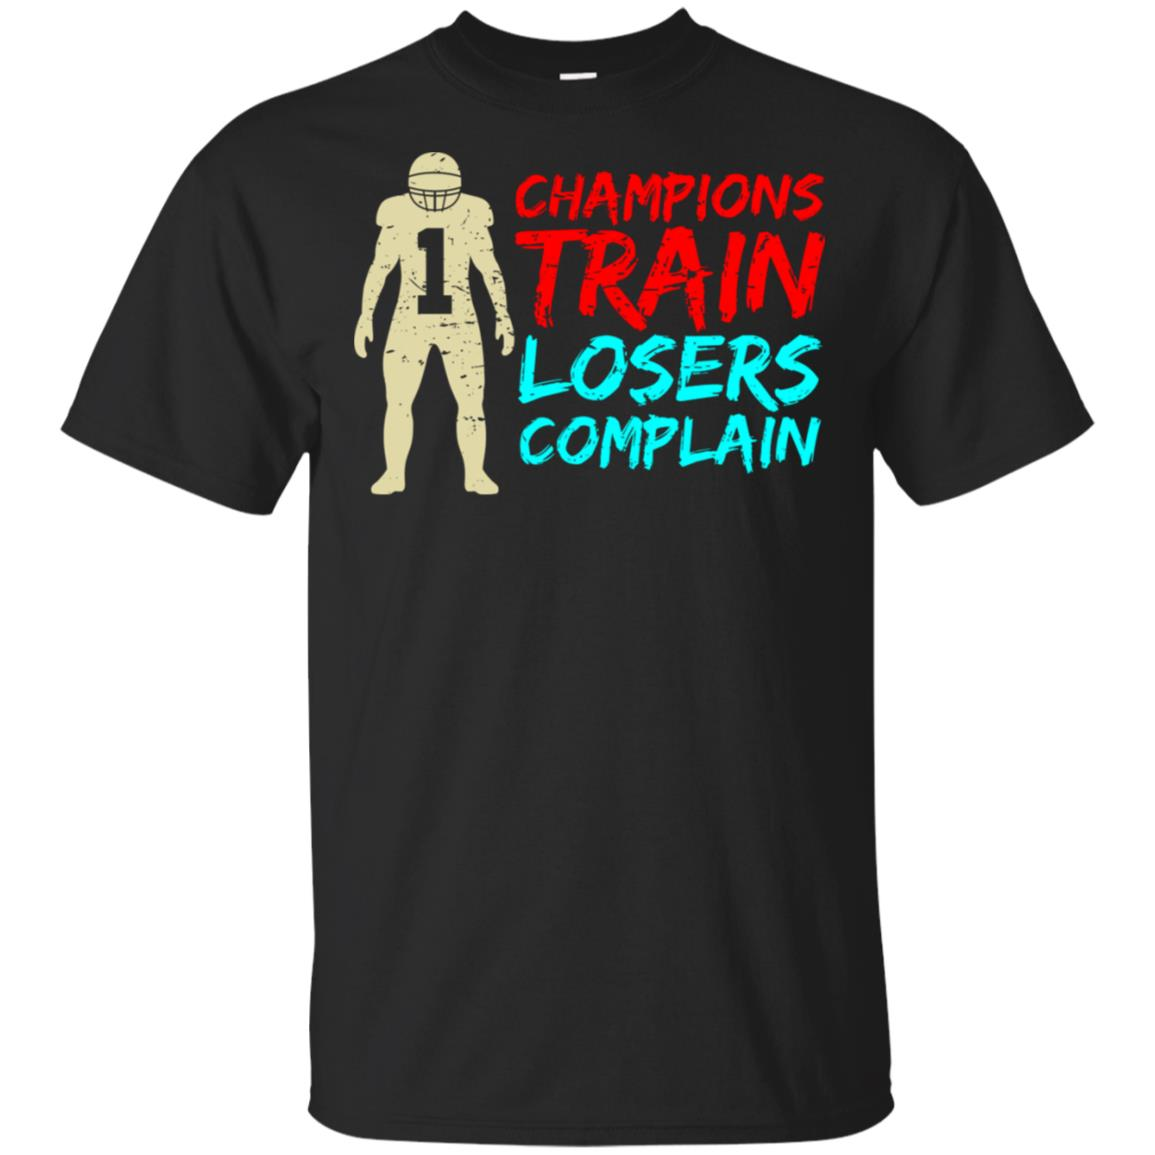 Champions Train Losers Complain Football Fan Gift Unisex Short Sleeve